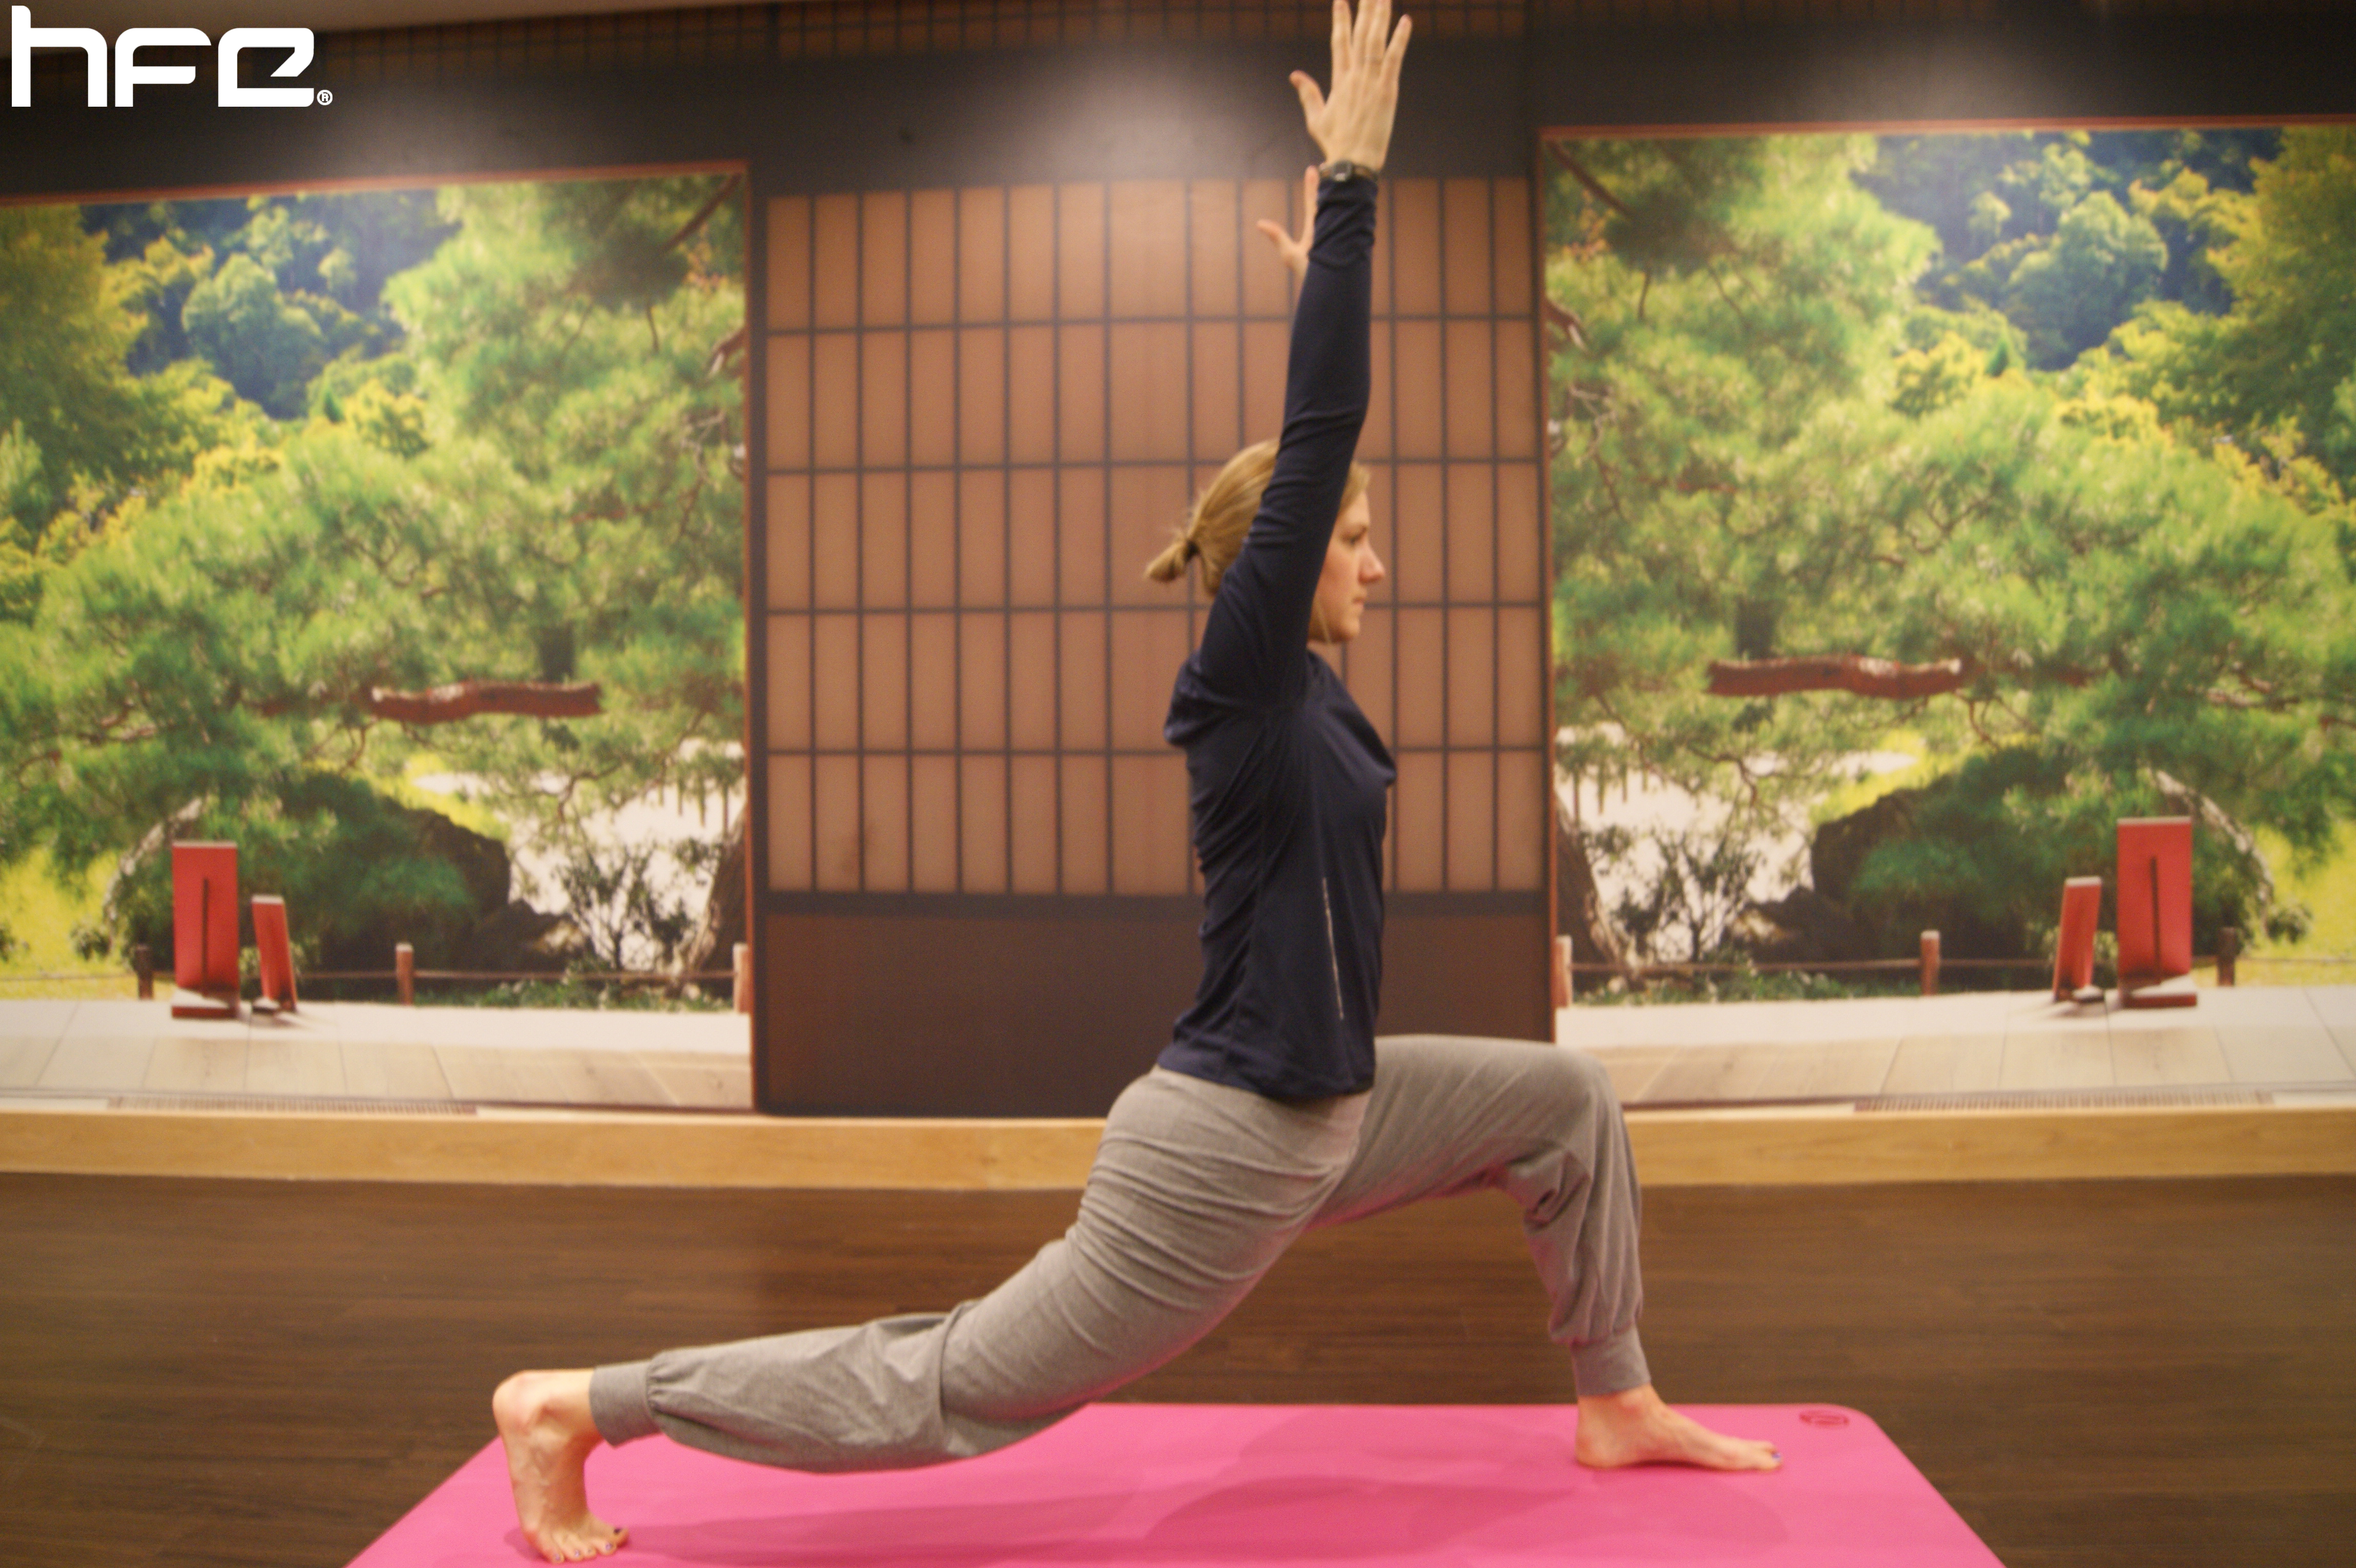 Laura lunges in this yoga pose